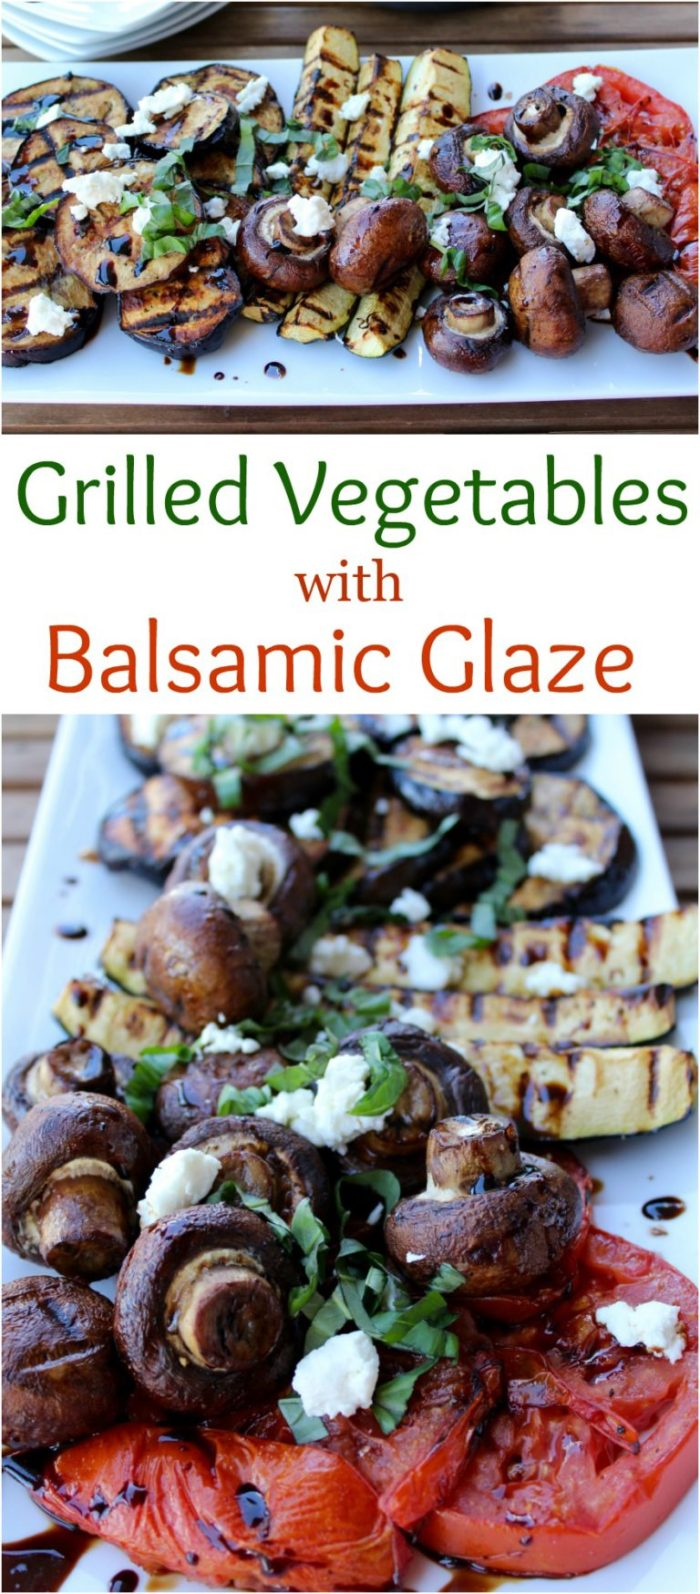 Grilled Vegetables with Balsamic Glaze. Perfect Summer Side!